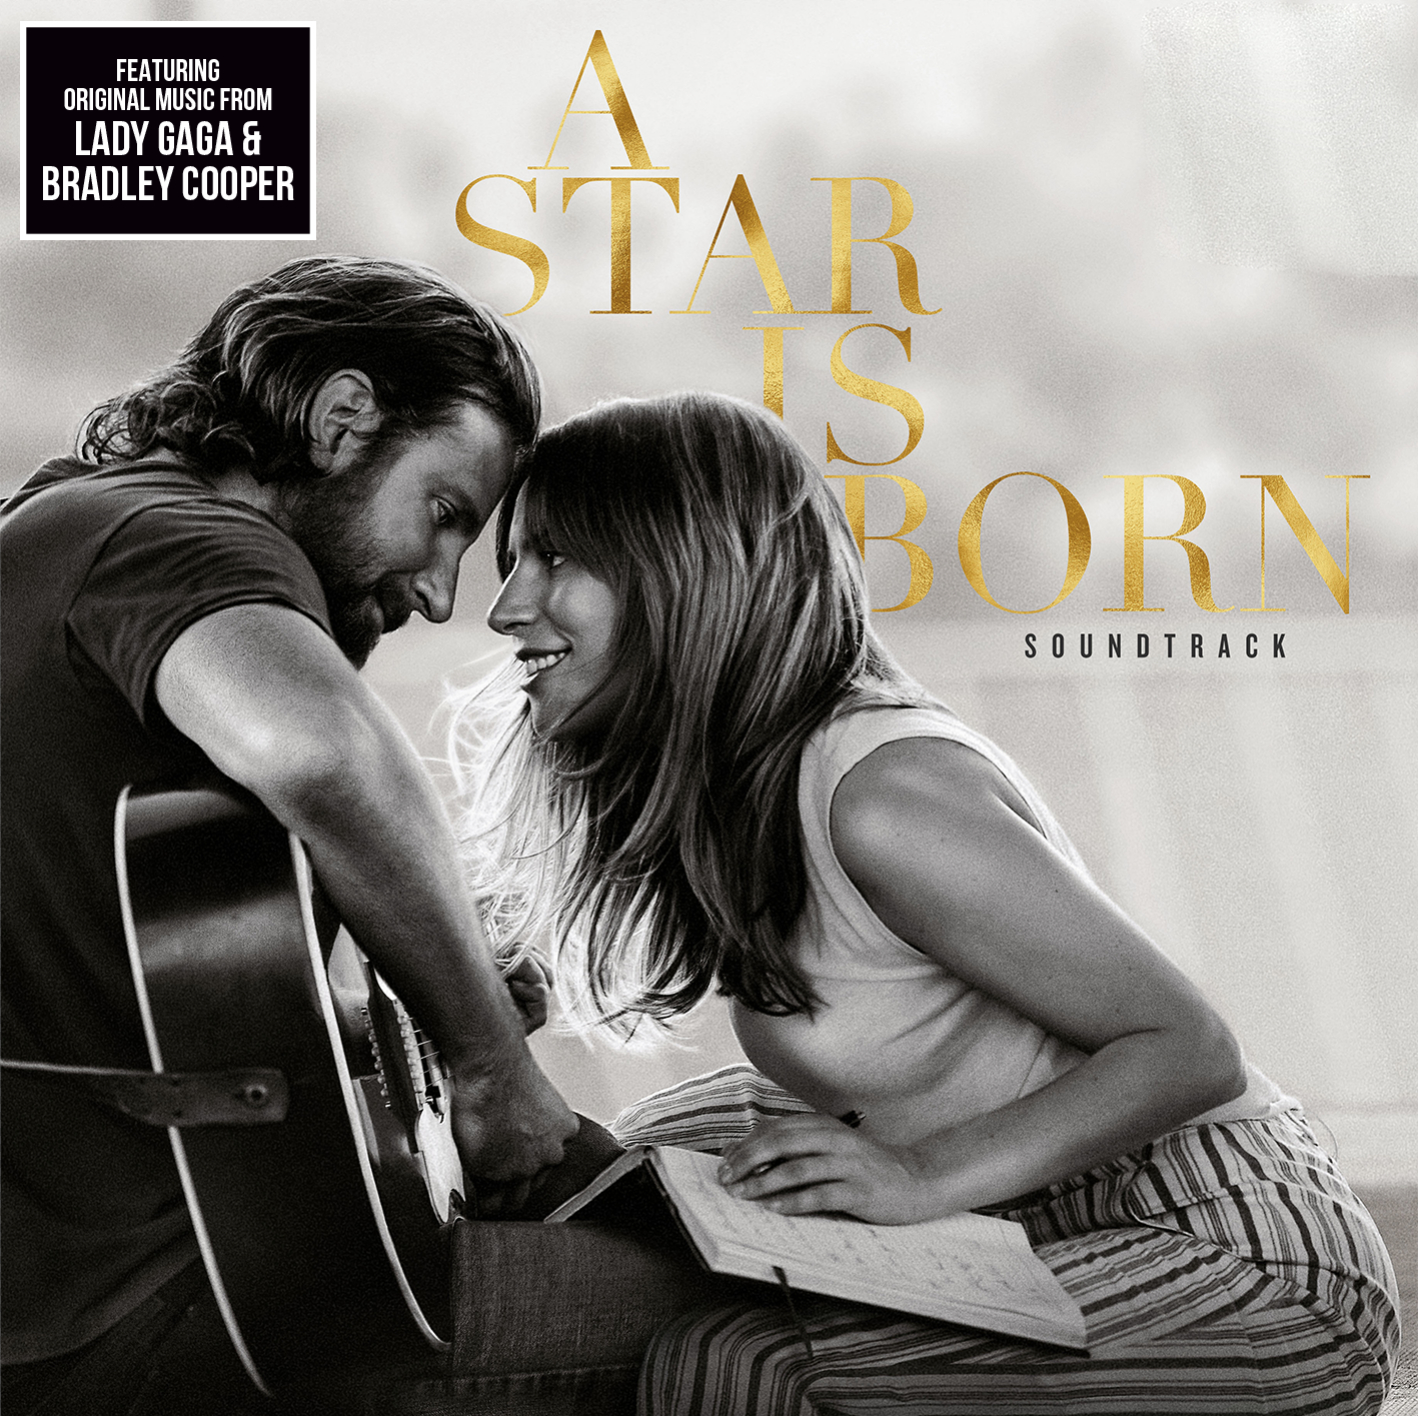 一個巨星的誕生 / A Star Is Born